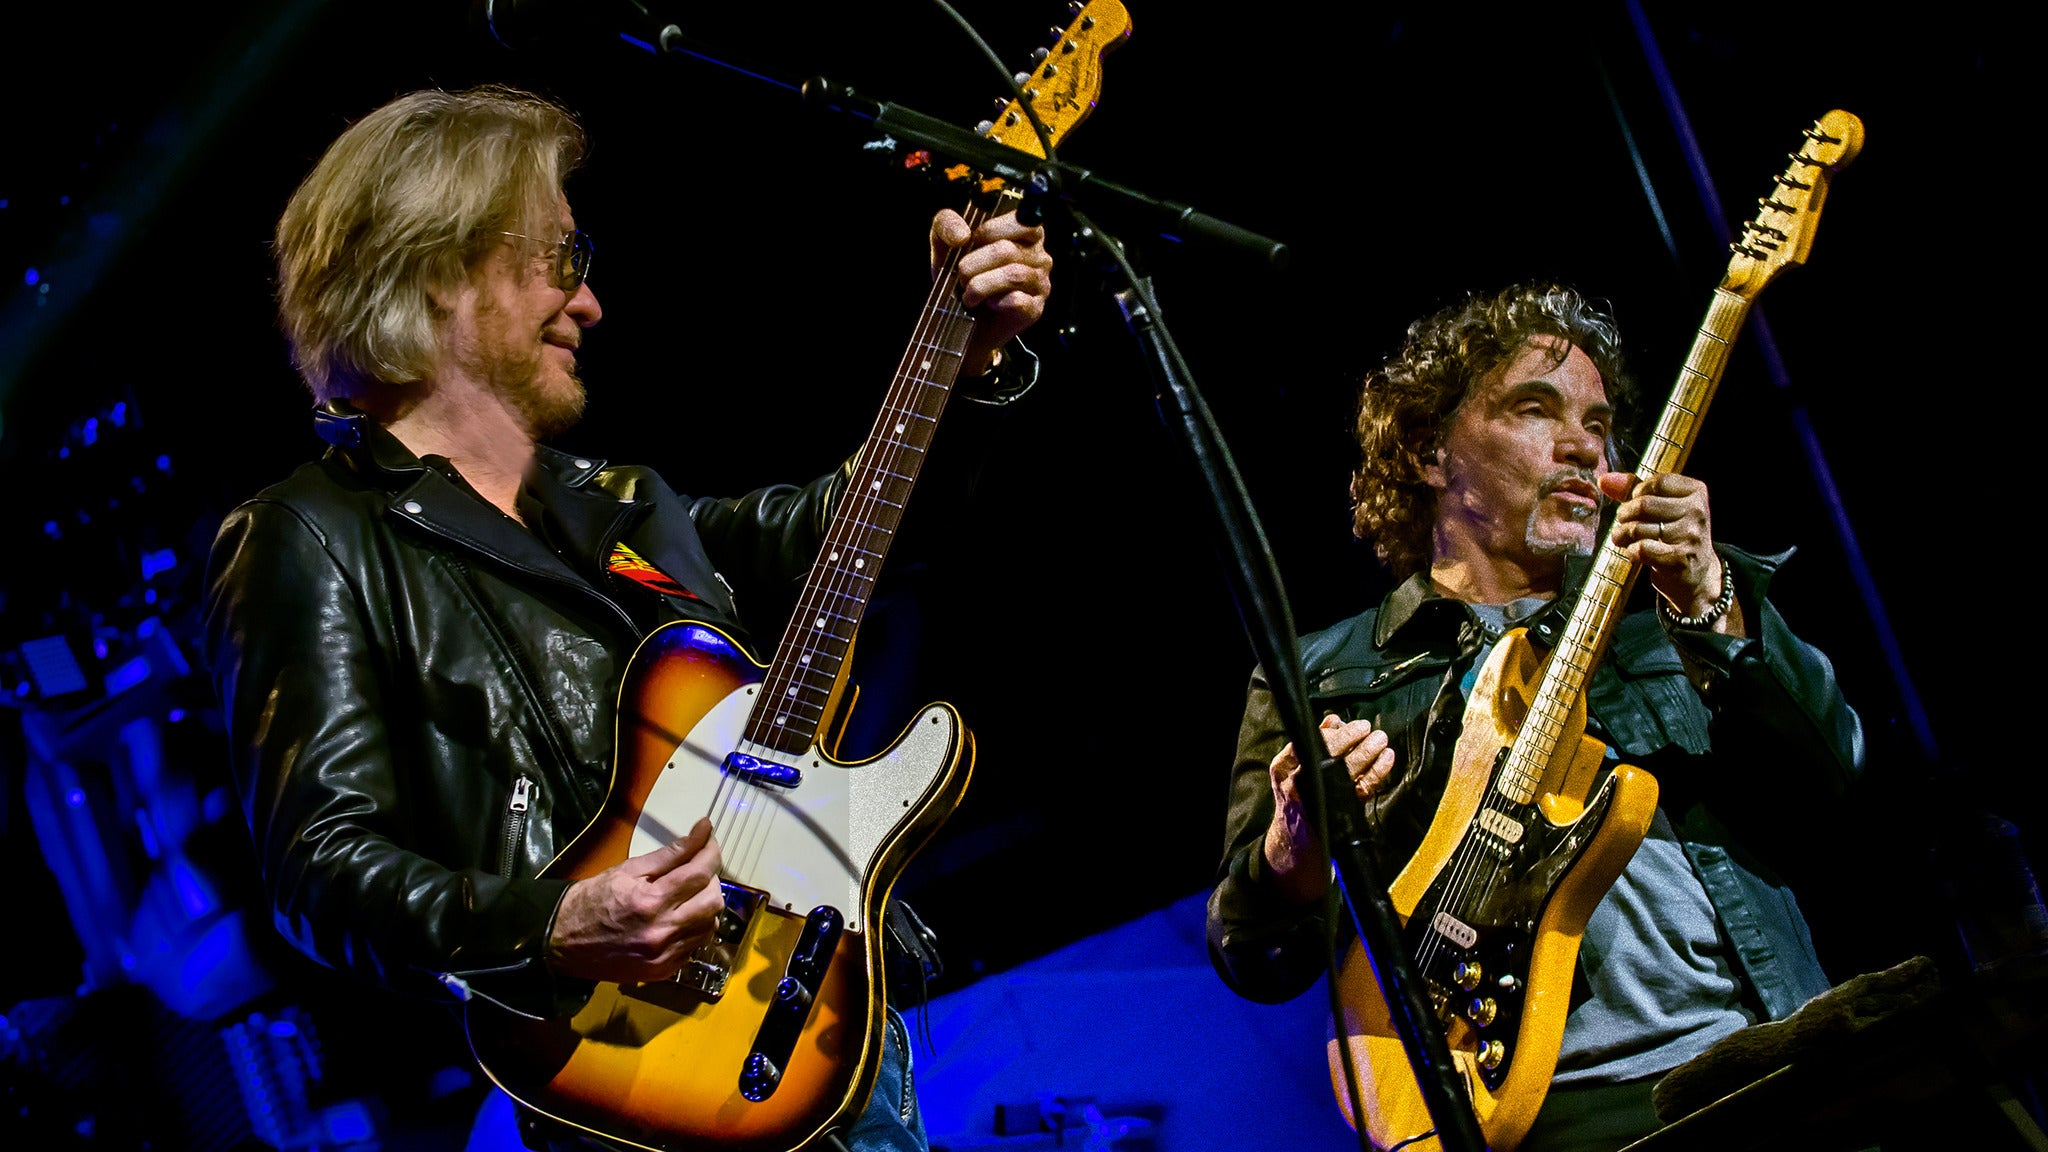 Daryl Hall & John Oates at Hollywood Bowl